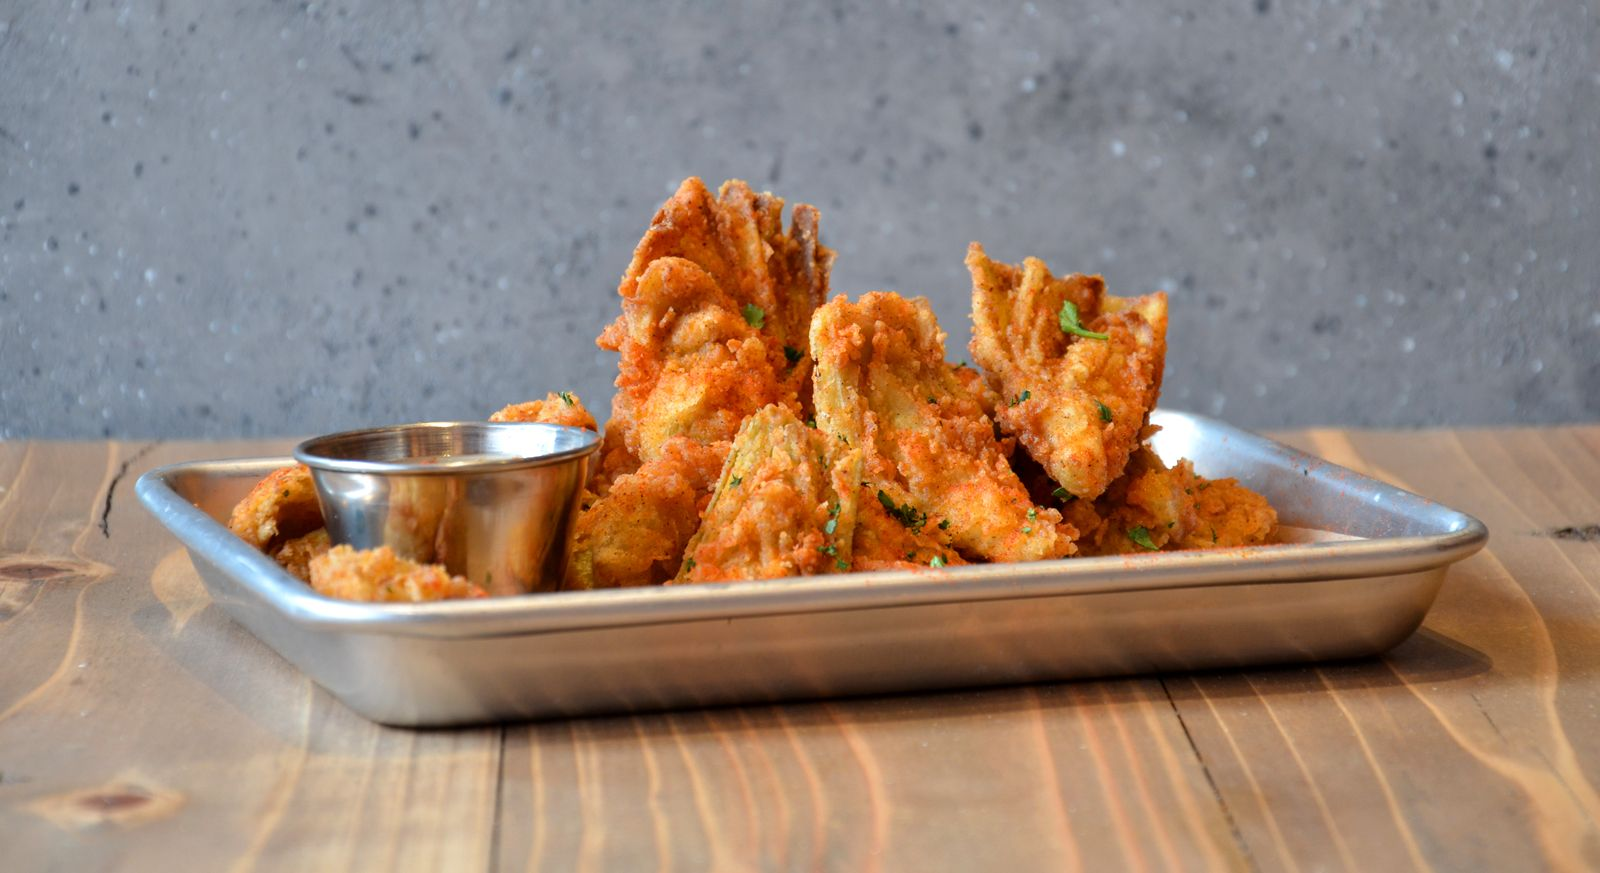 Fox & Hound Launches New Core Menu With Elevated Bar Food